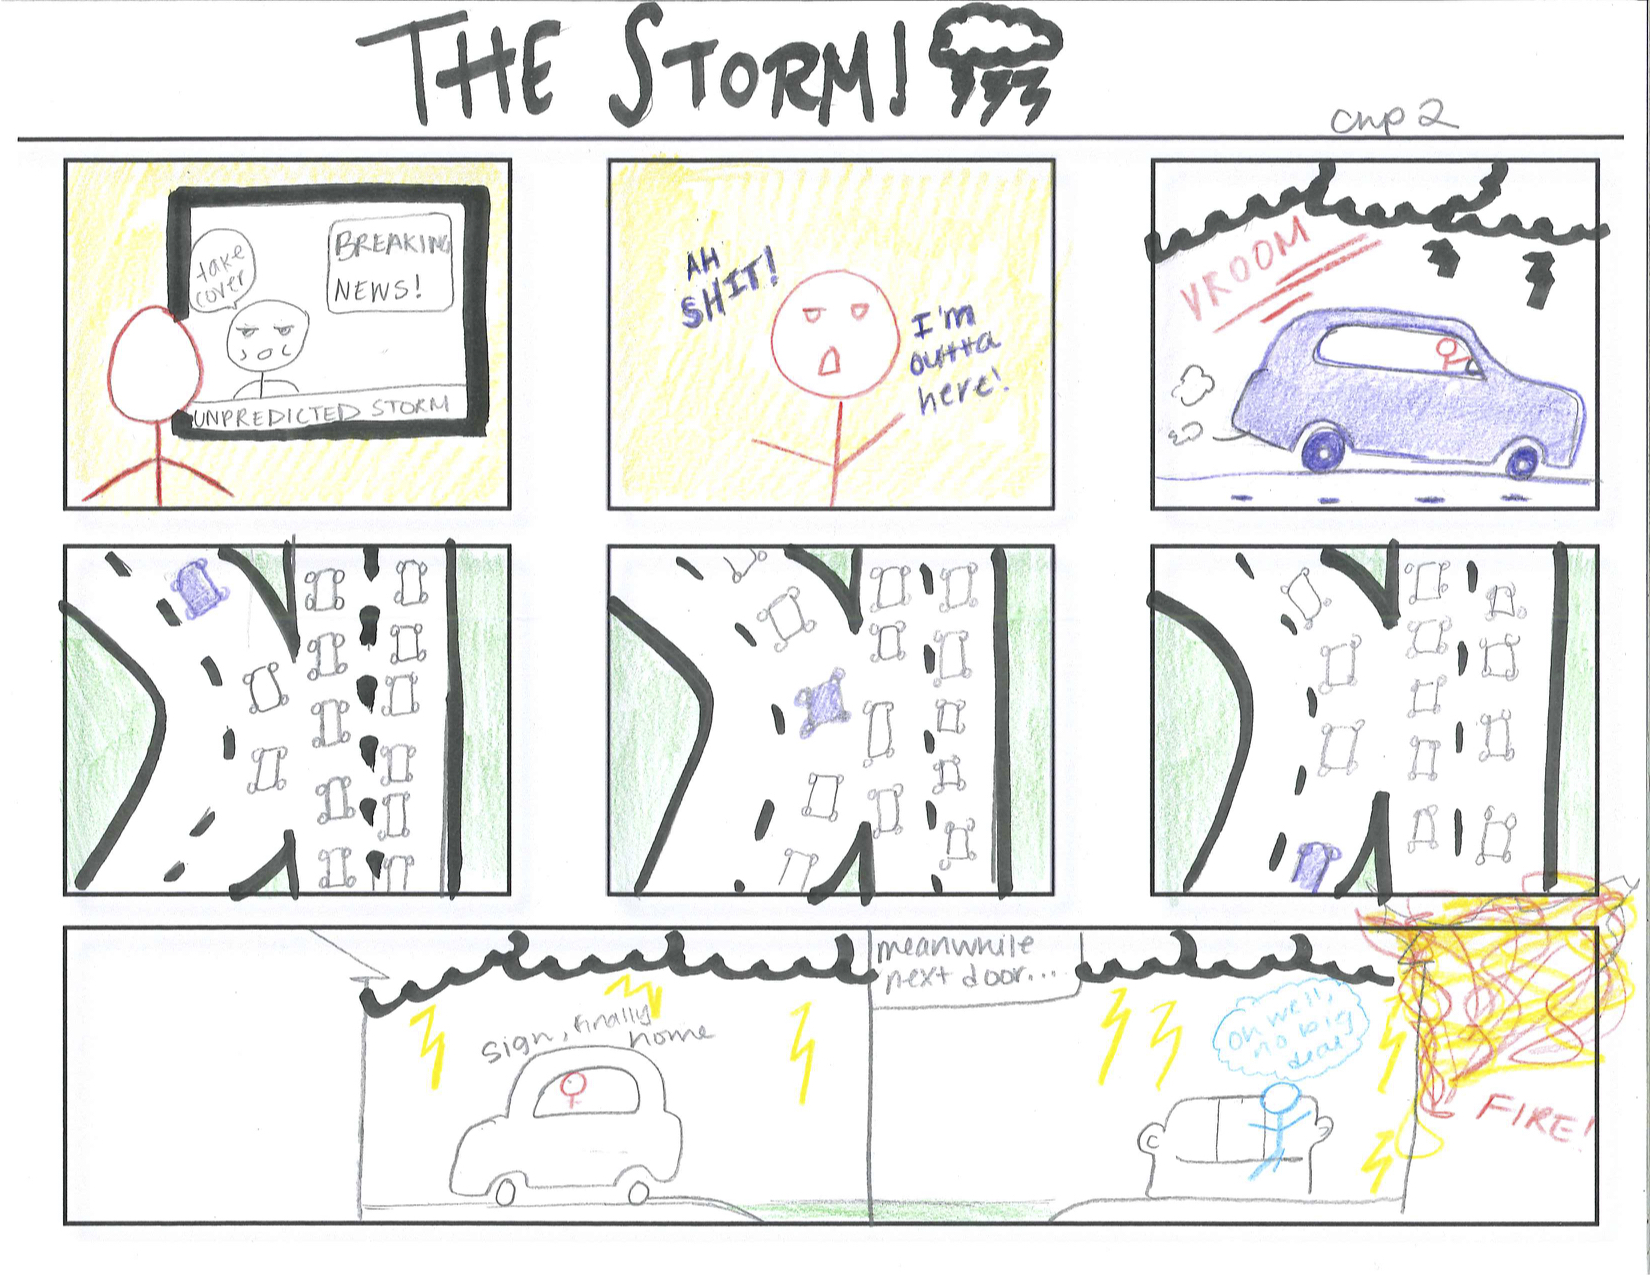 The Storm #2